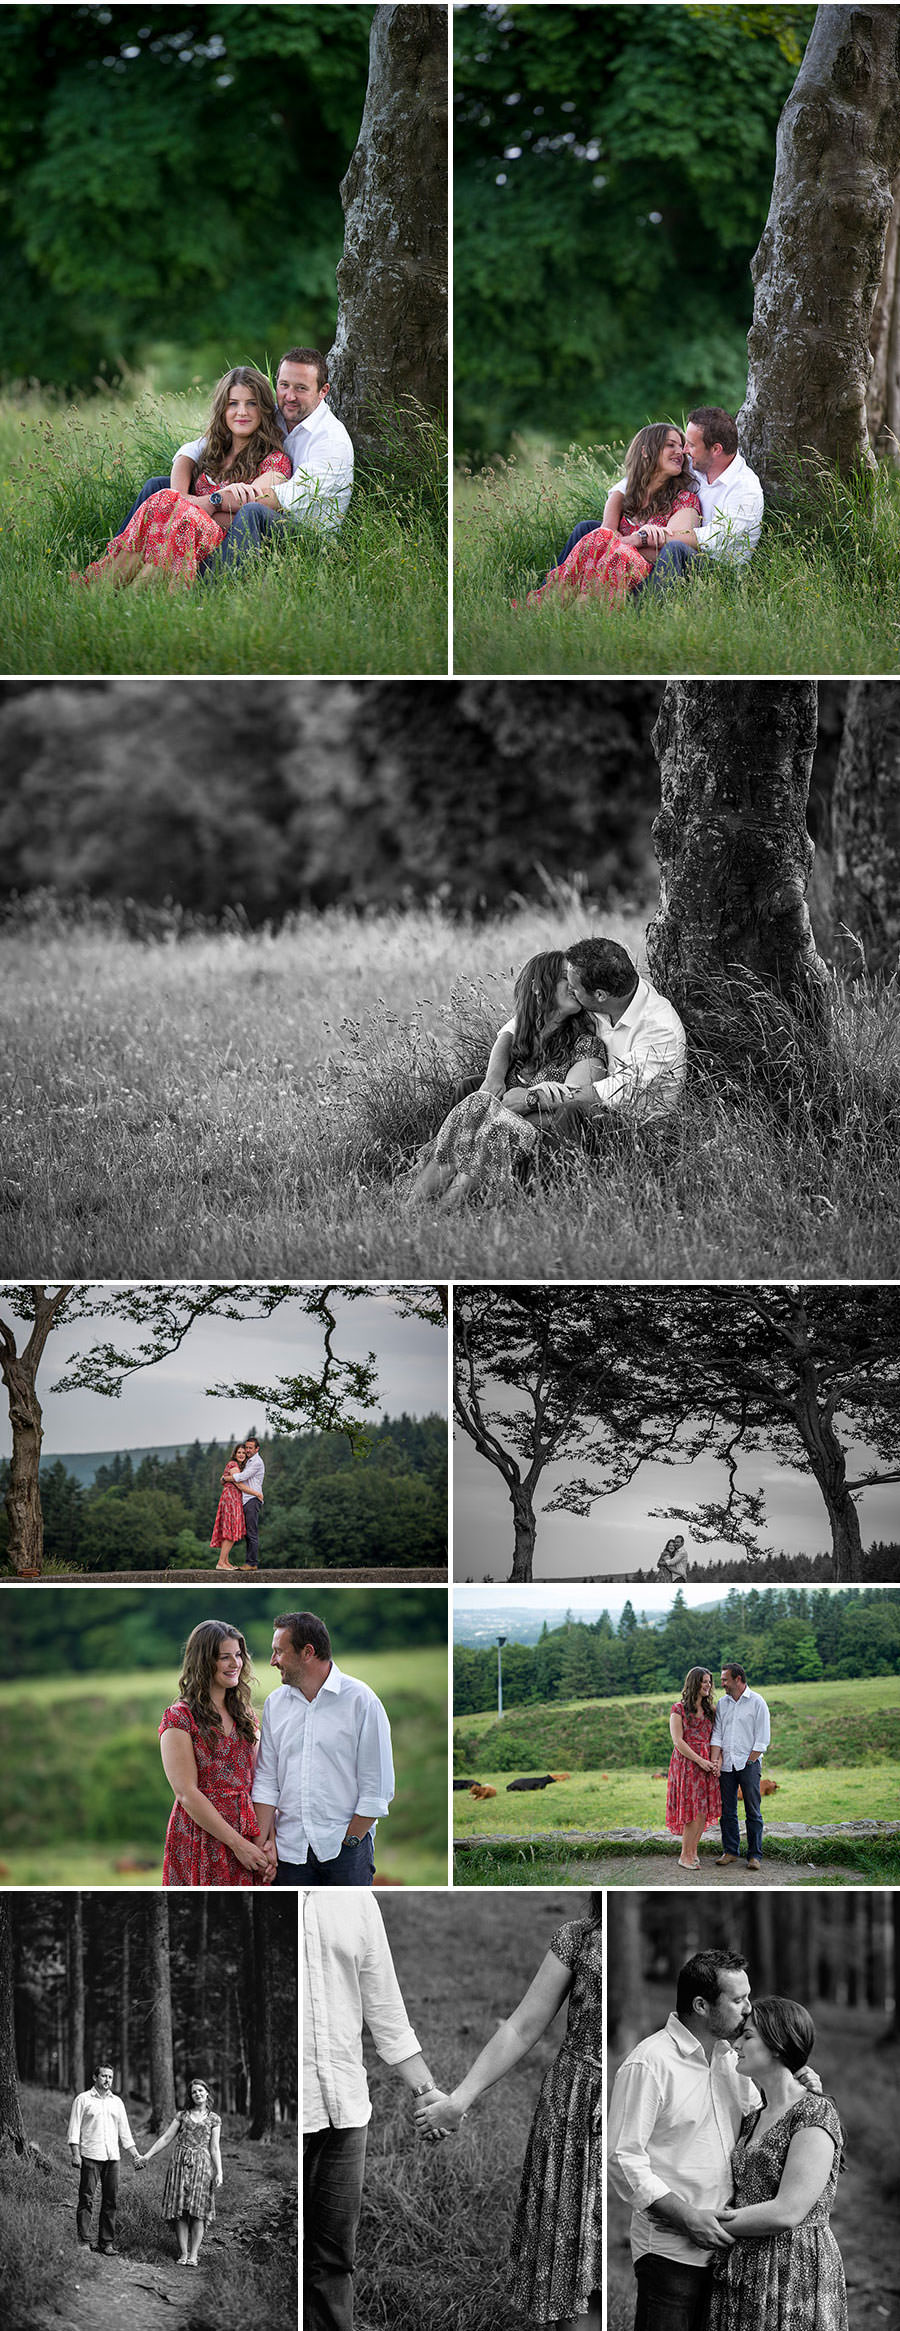 M + G | Couple in Love | Wicklow Engagement Session | Dublin Love Photographer 4